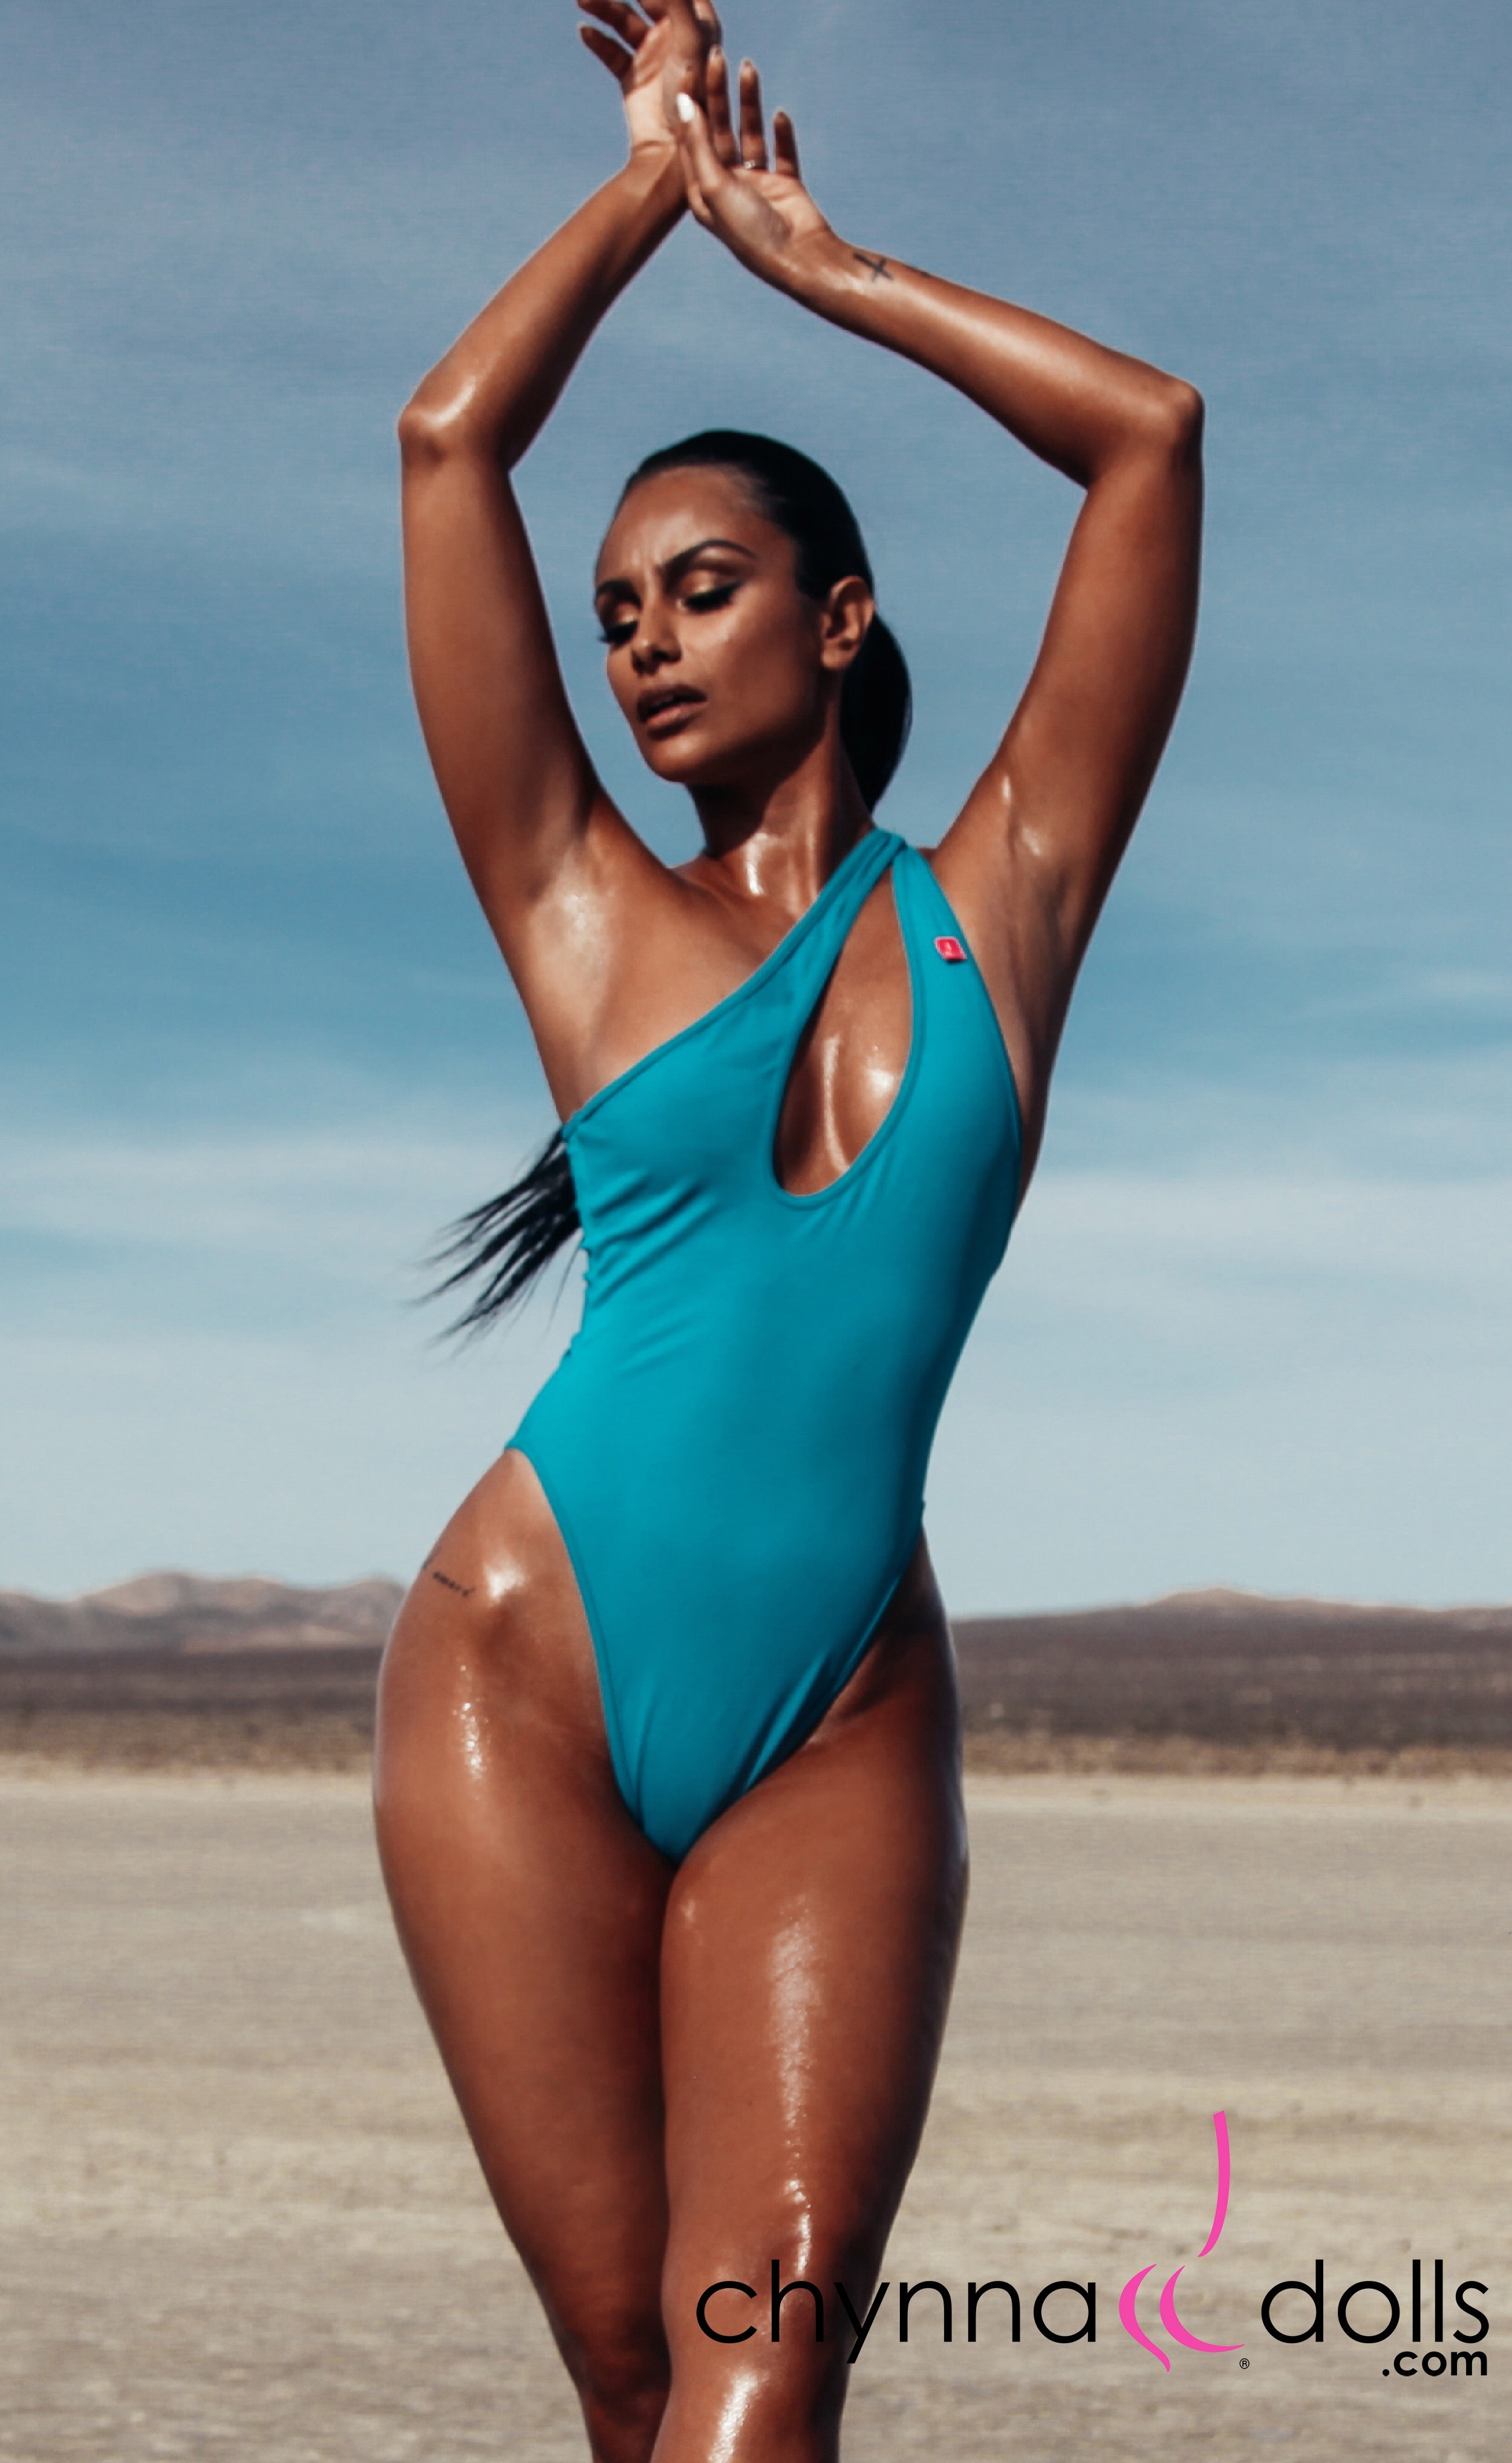 Santorini: Asymmetric Keyhole One-Piece in Teal - Chynna Dolls Swimwear